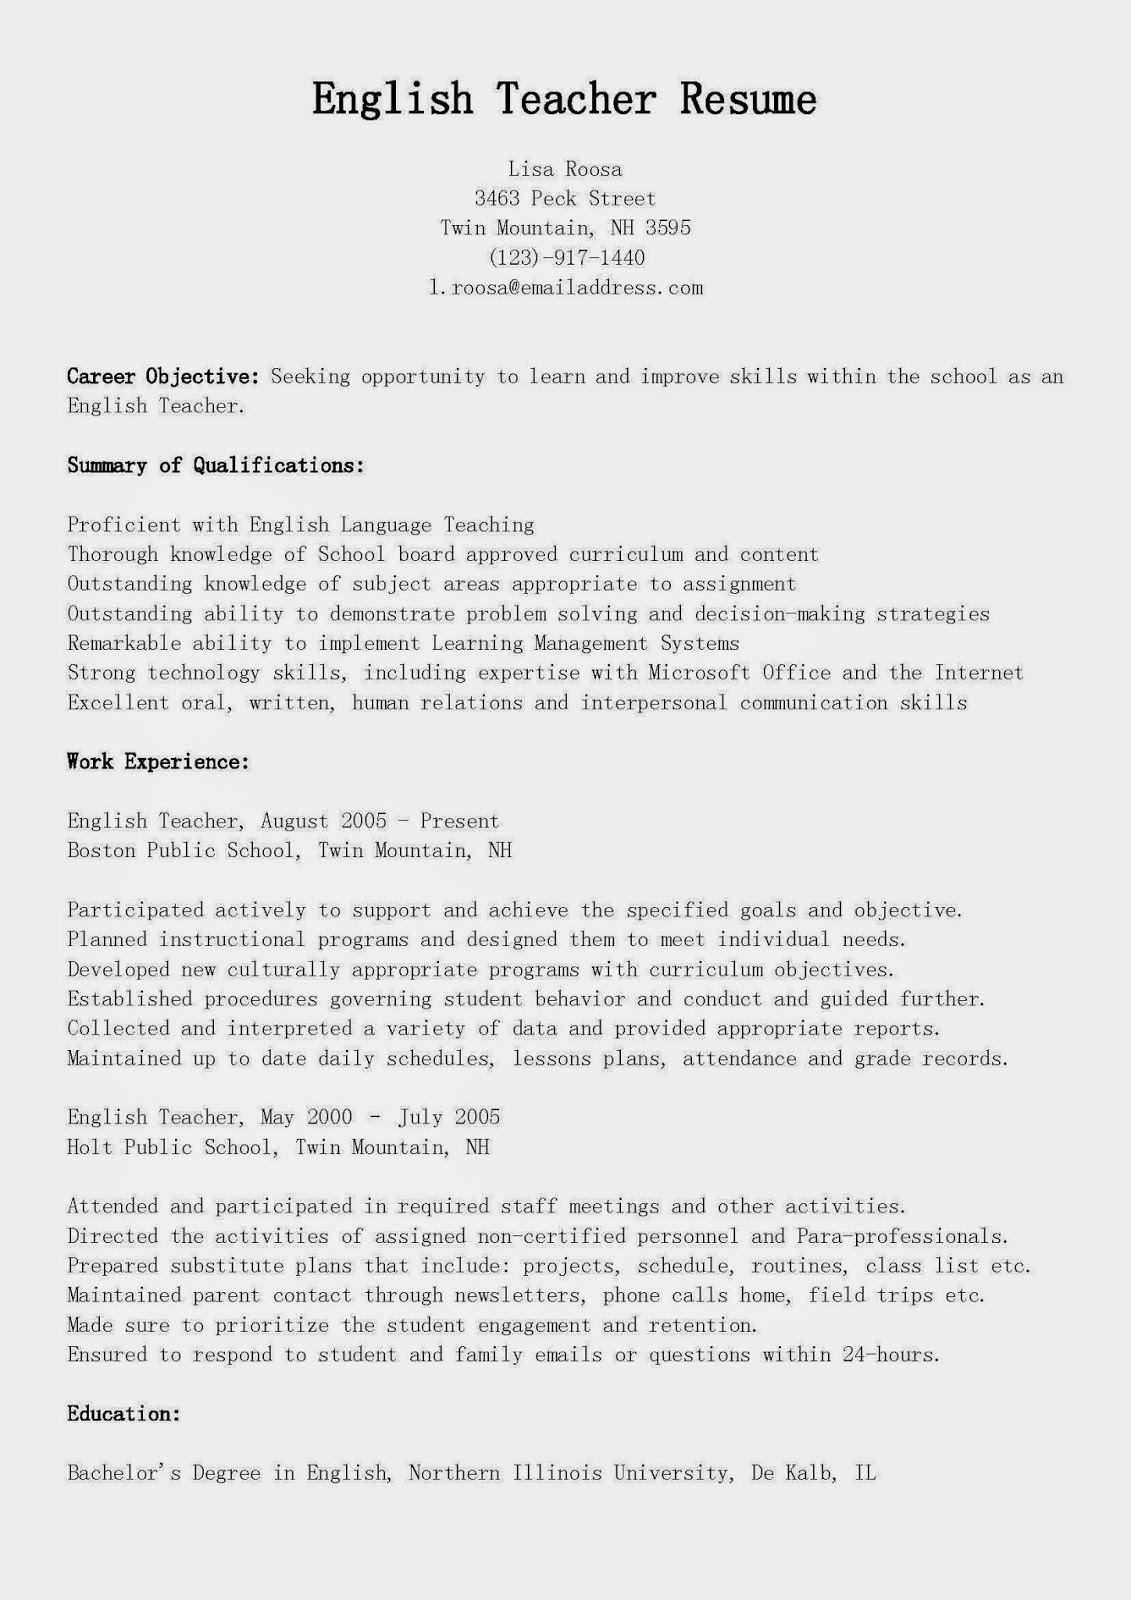 Sample Teacher Resume Templates Resume Samples English Teacher Resume Sample